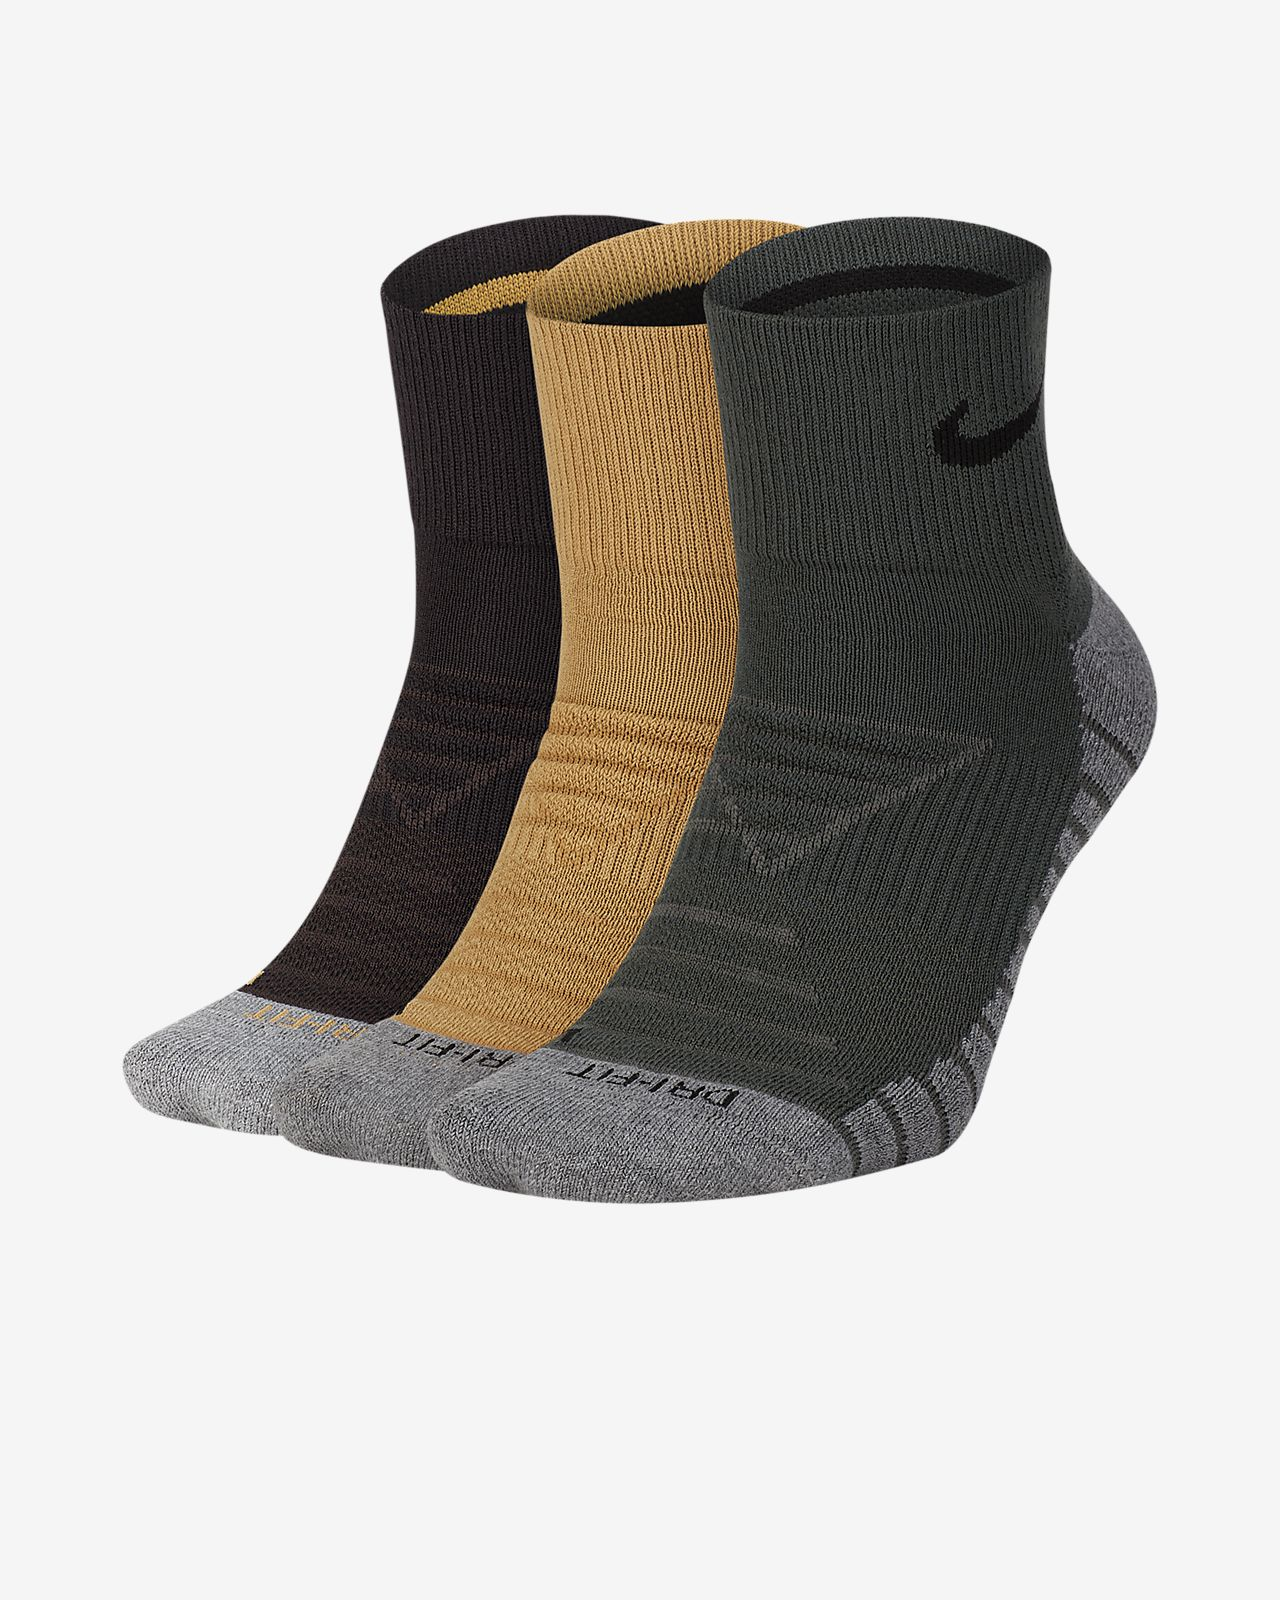 Nike Dry Cushion Quarter Training Socks (3 Pair)